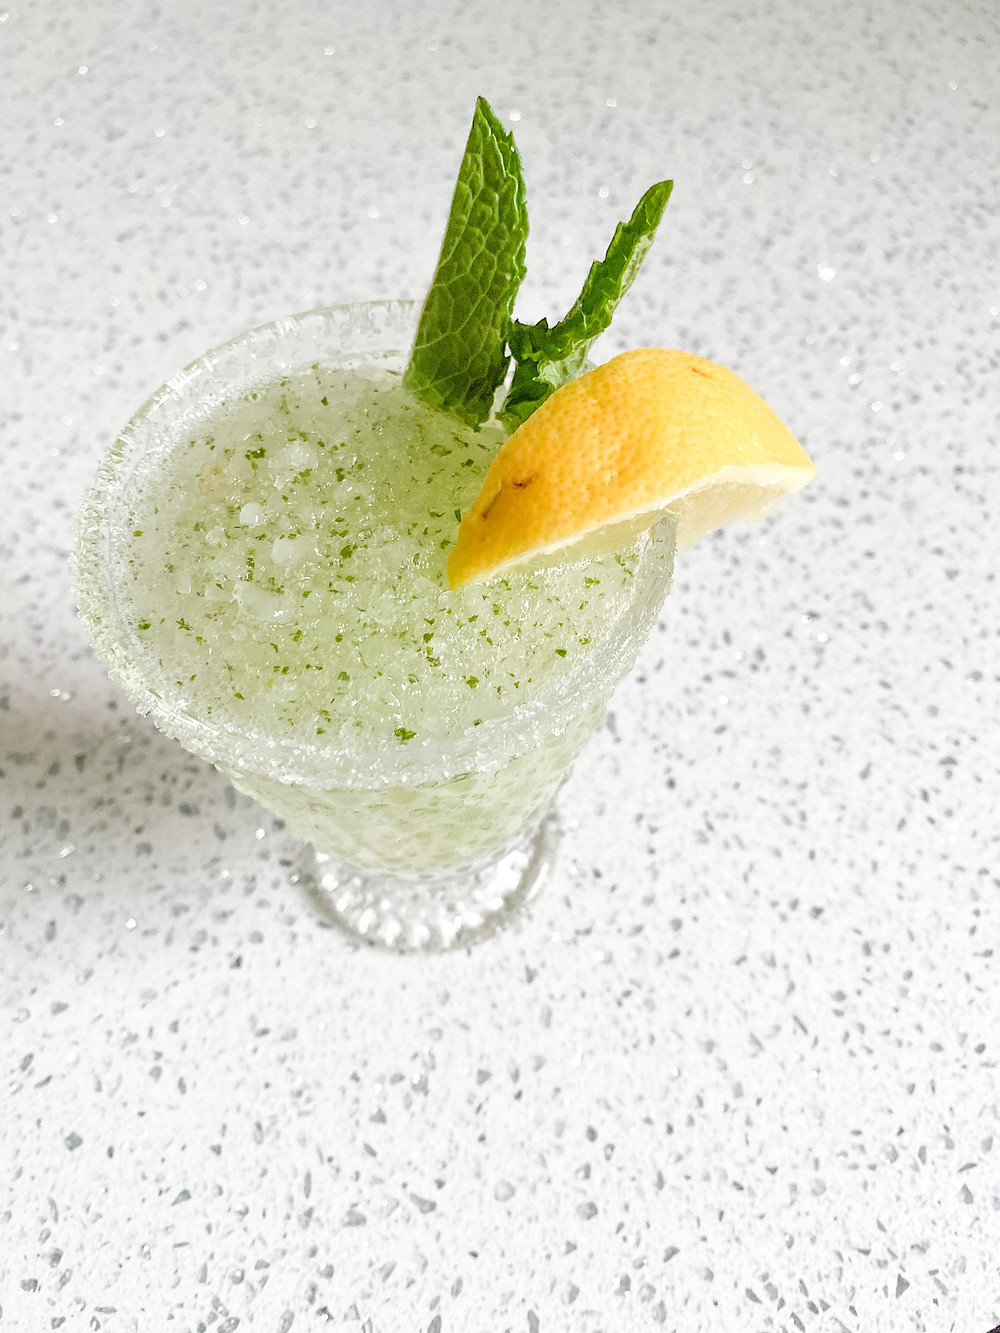 The Perfect Summer Sip: A Delicious Mint Lemonade #summerdrinks #summerrecipes #drinkrecipes